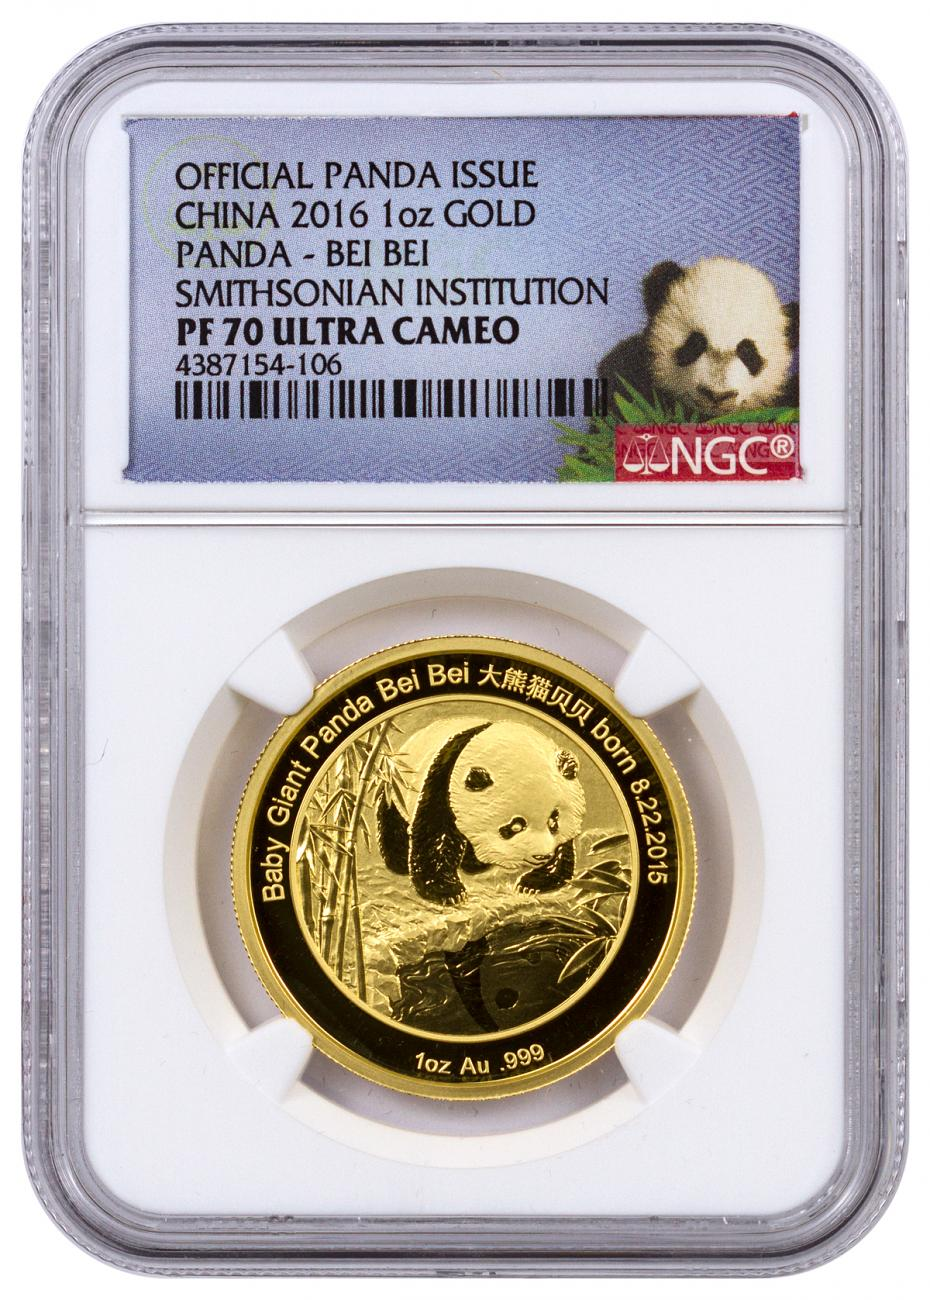 2016 China Bei Bei Smithsonian Institution Official Mint Medal 1 oz Gold Proof Medal NGC PF70 UC (Panda Label)